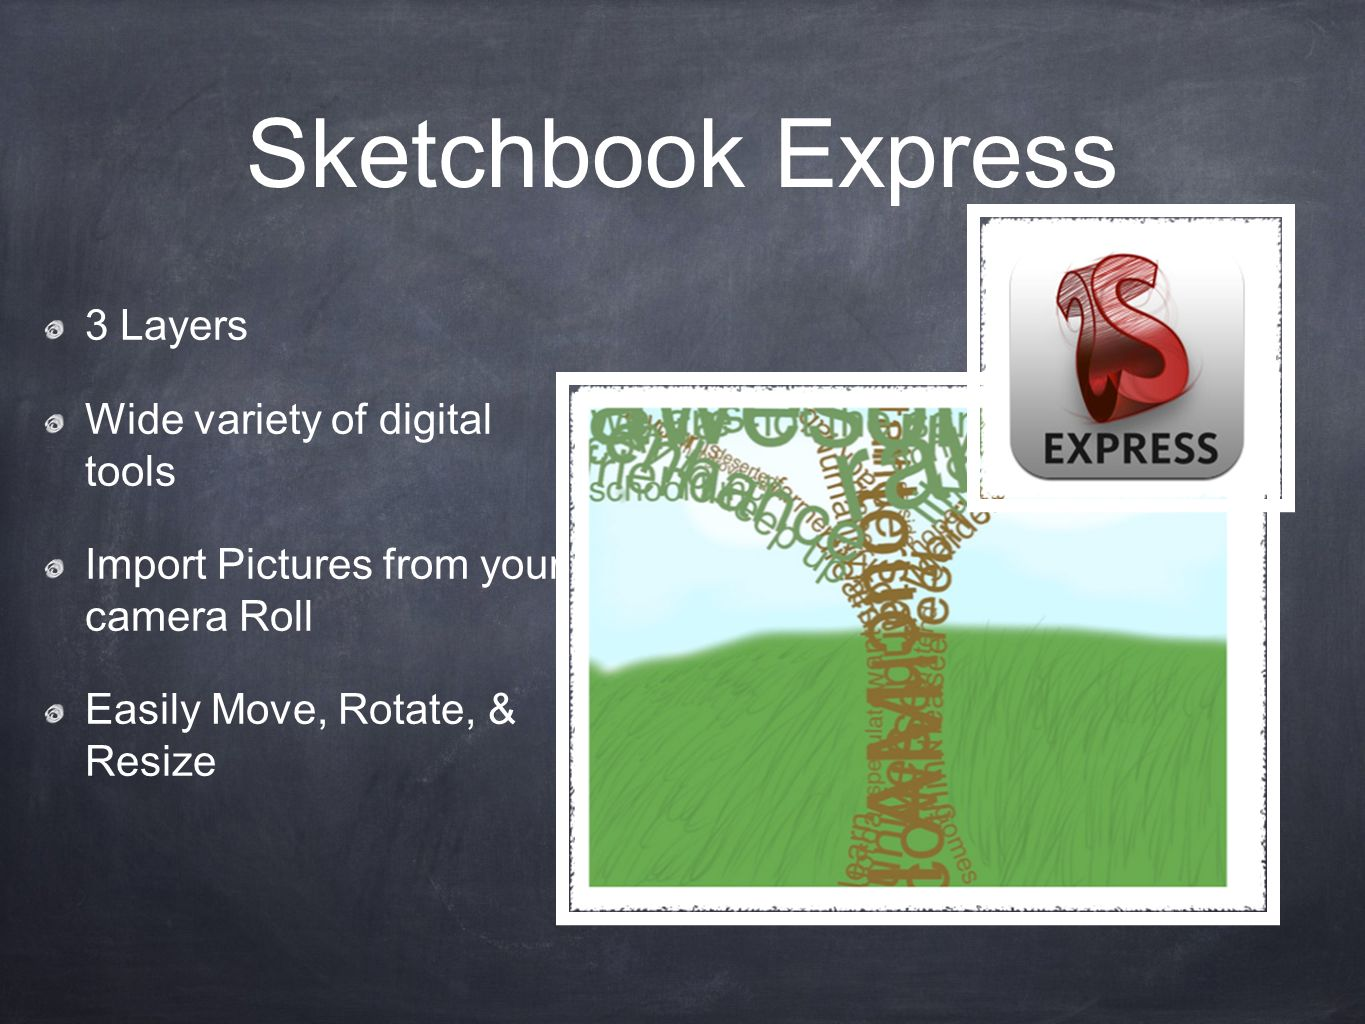 Sketchbook Express 3 Layers Wide variety of digital tools Import Pictures from your camera Roll Easily Move, Rotate, & Resize